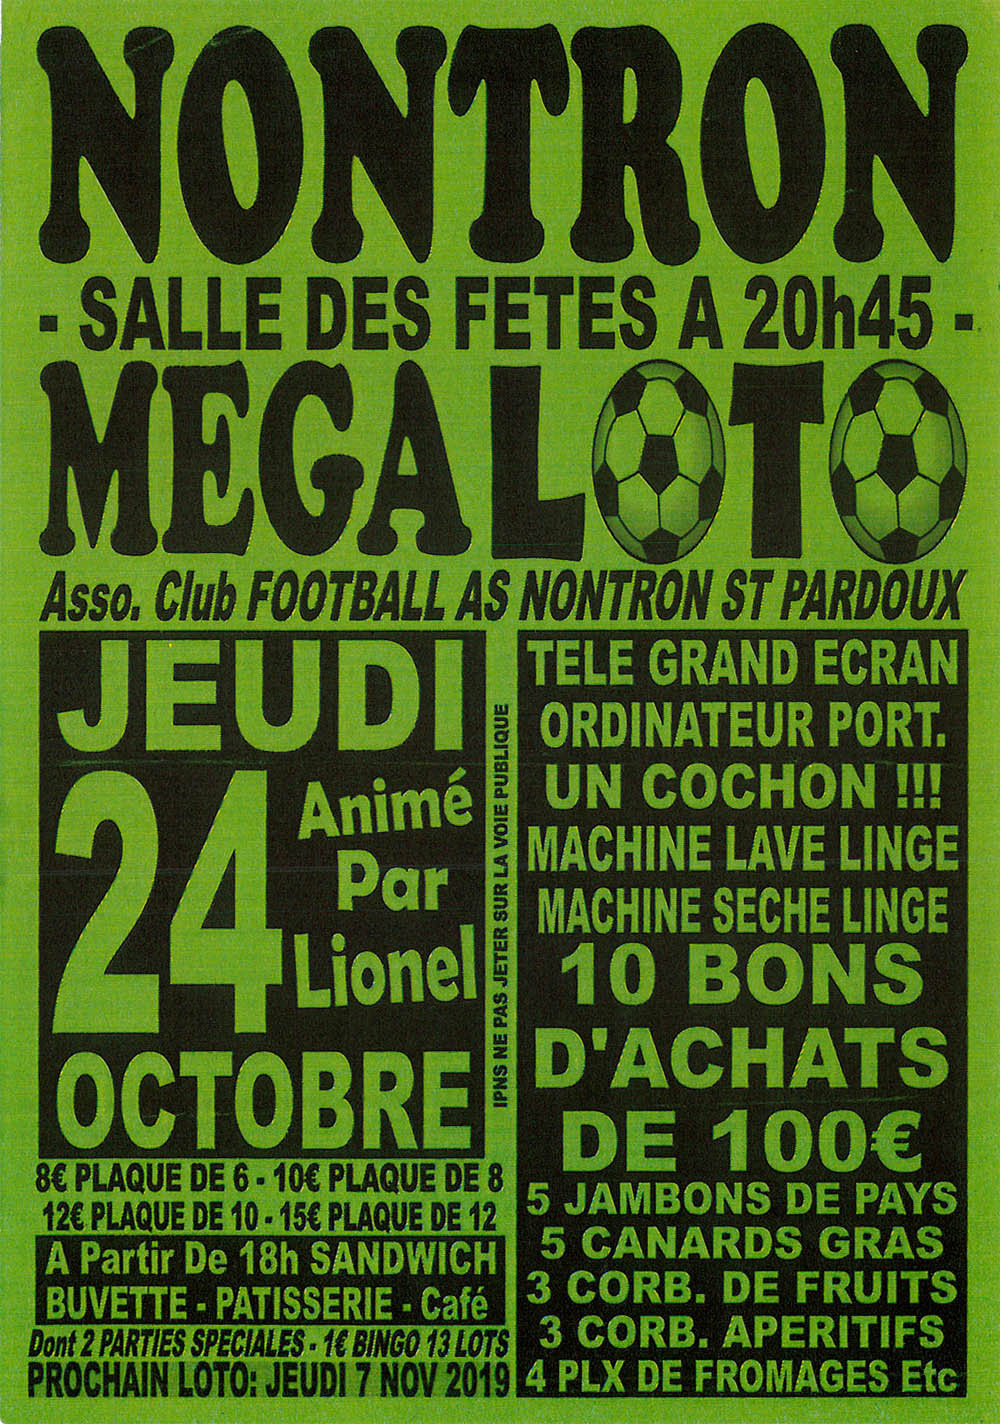 Mega Loto du Foot 24 octobre 2019